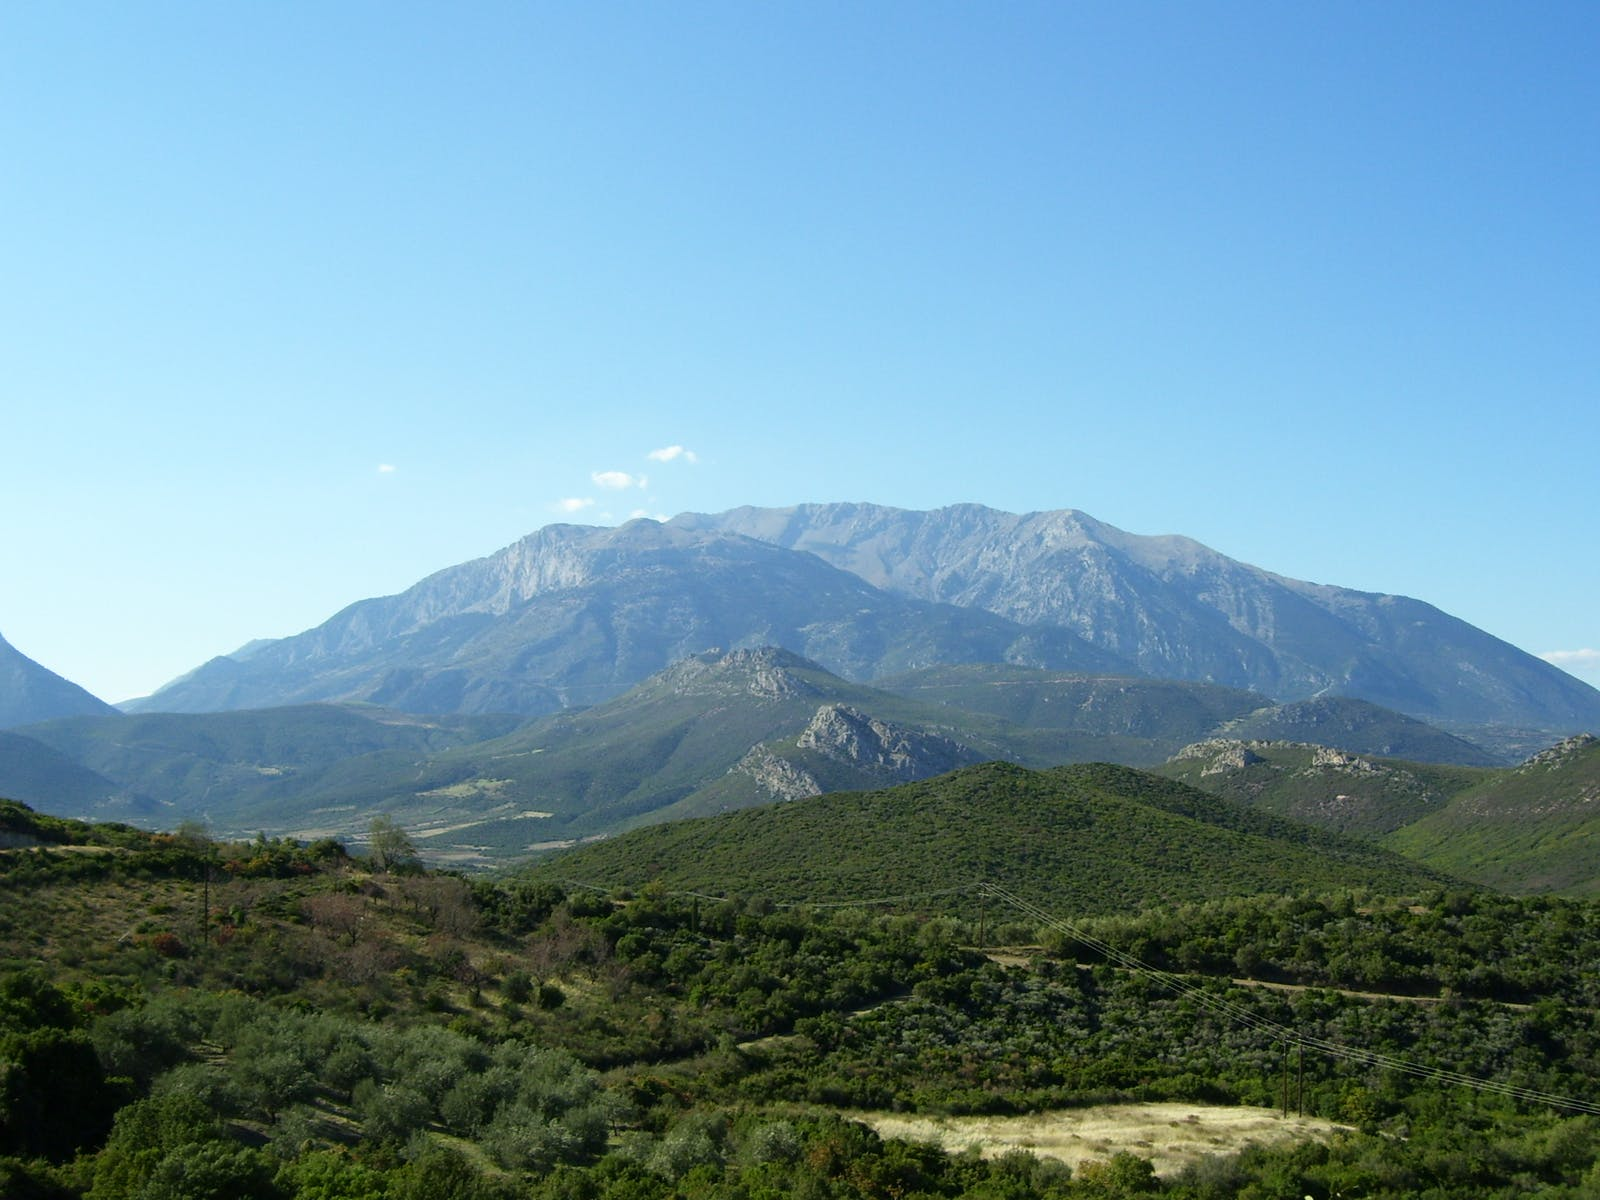 Pindus Mountains Mixed Forests